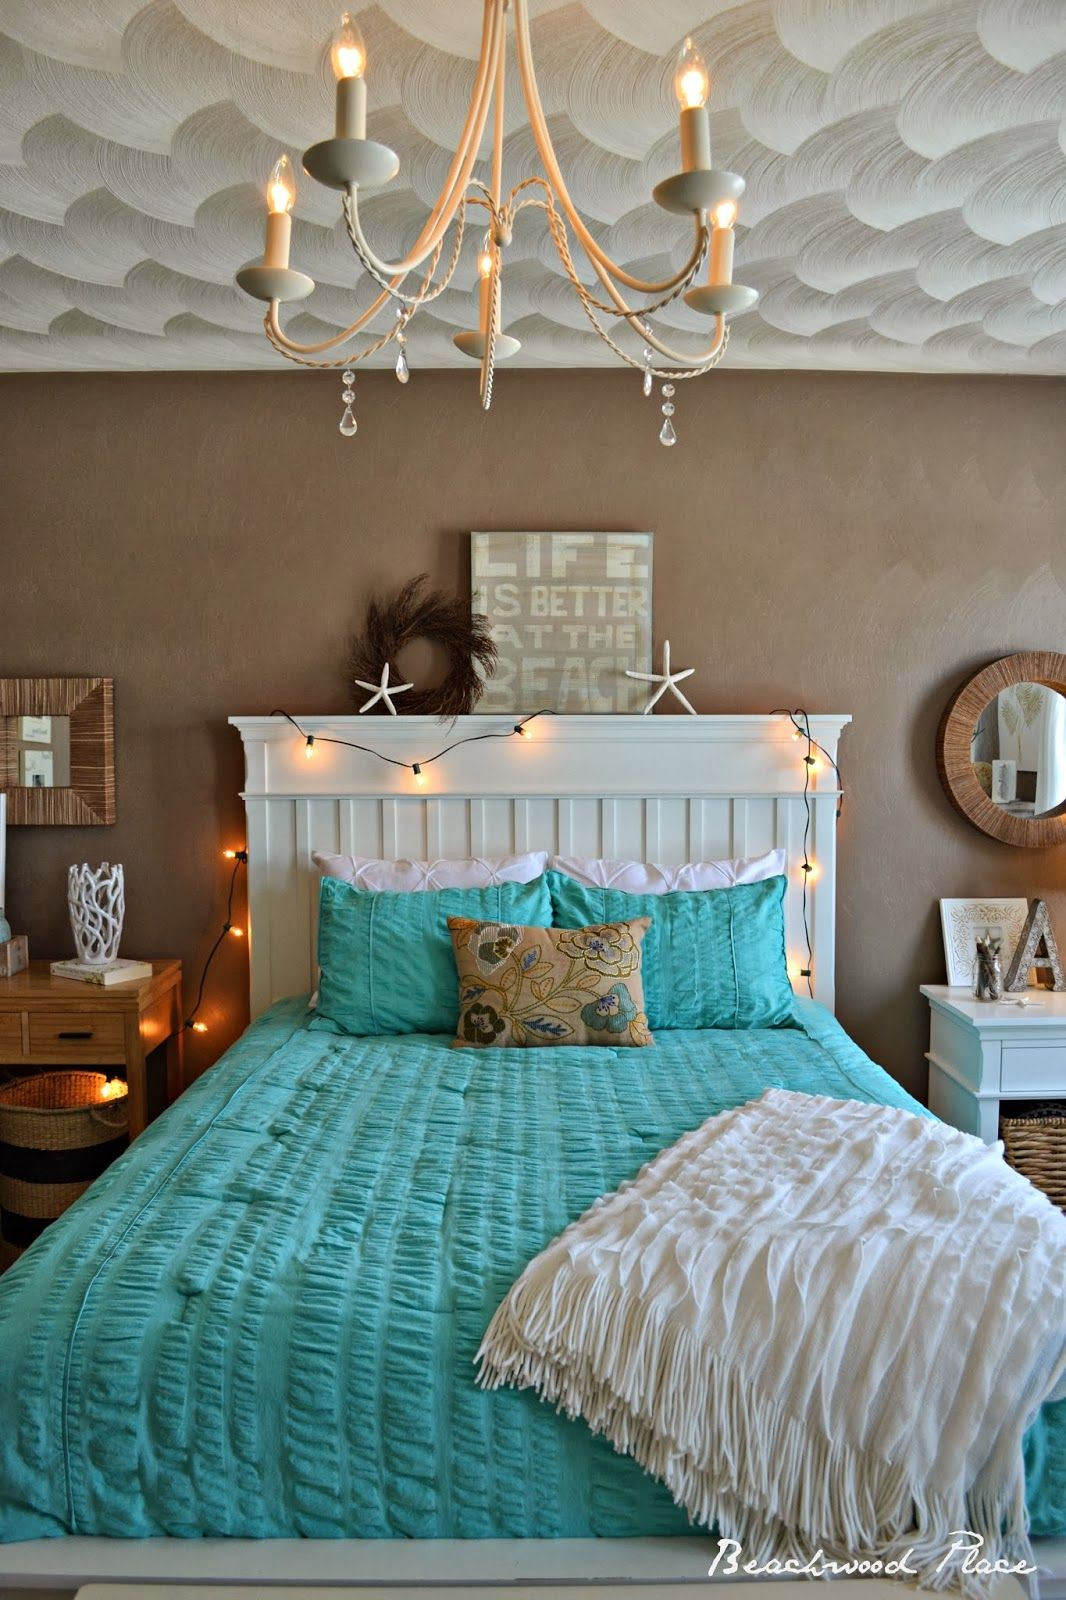 Diy Crystal Chandelier With Images Remodel Bedroom Turquoise